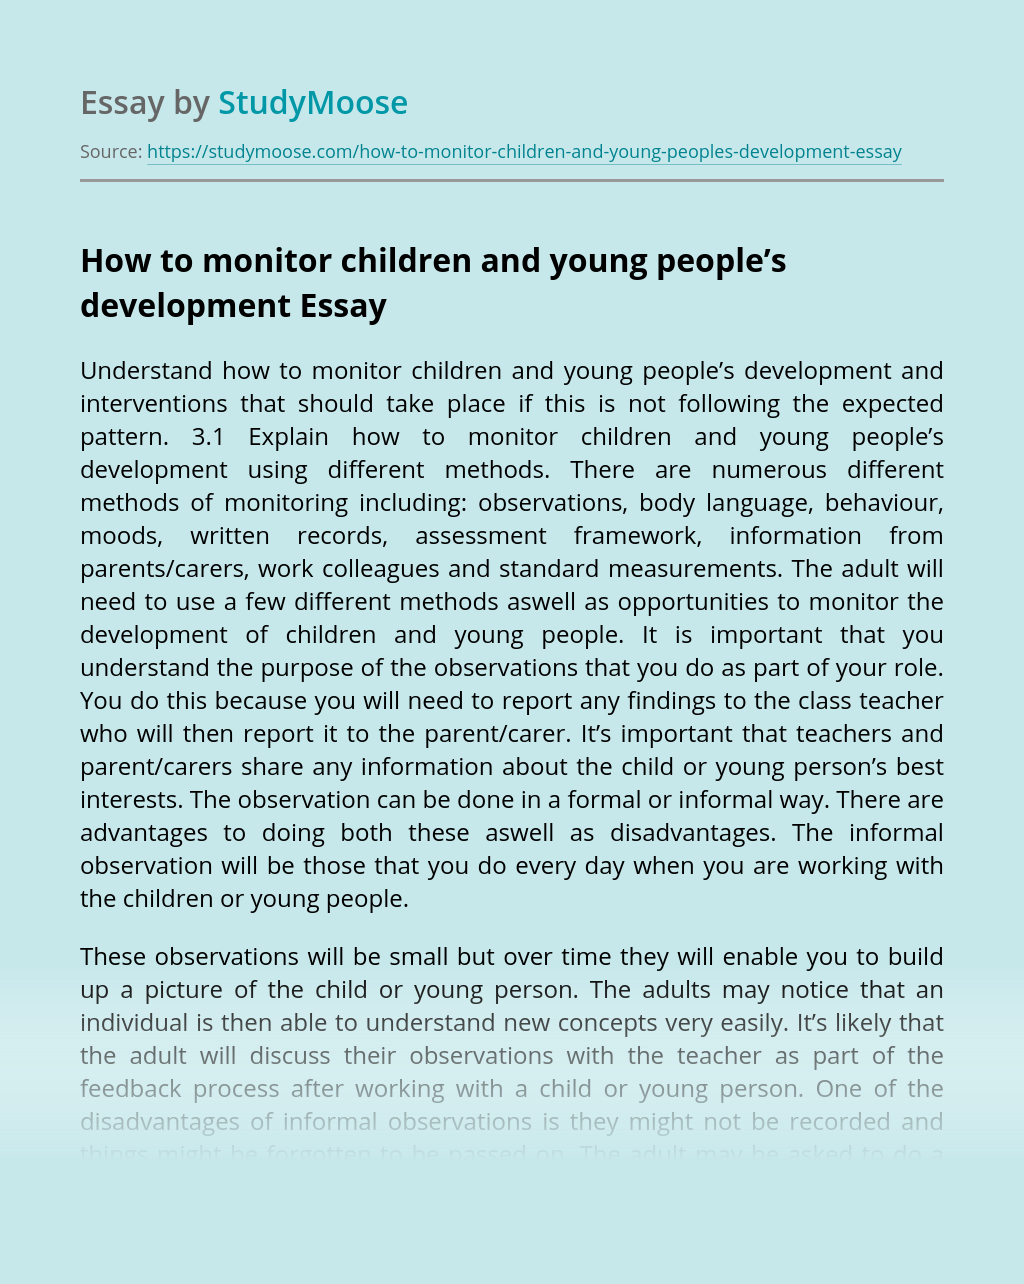 How to monitor children and young people's development